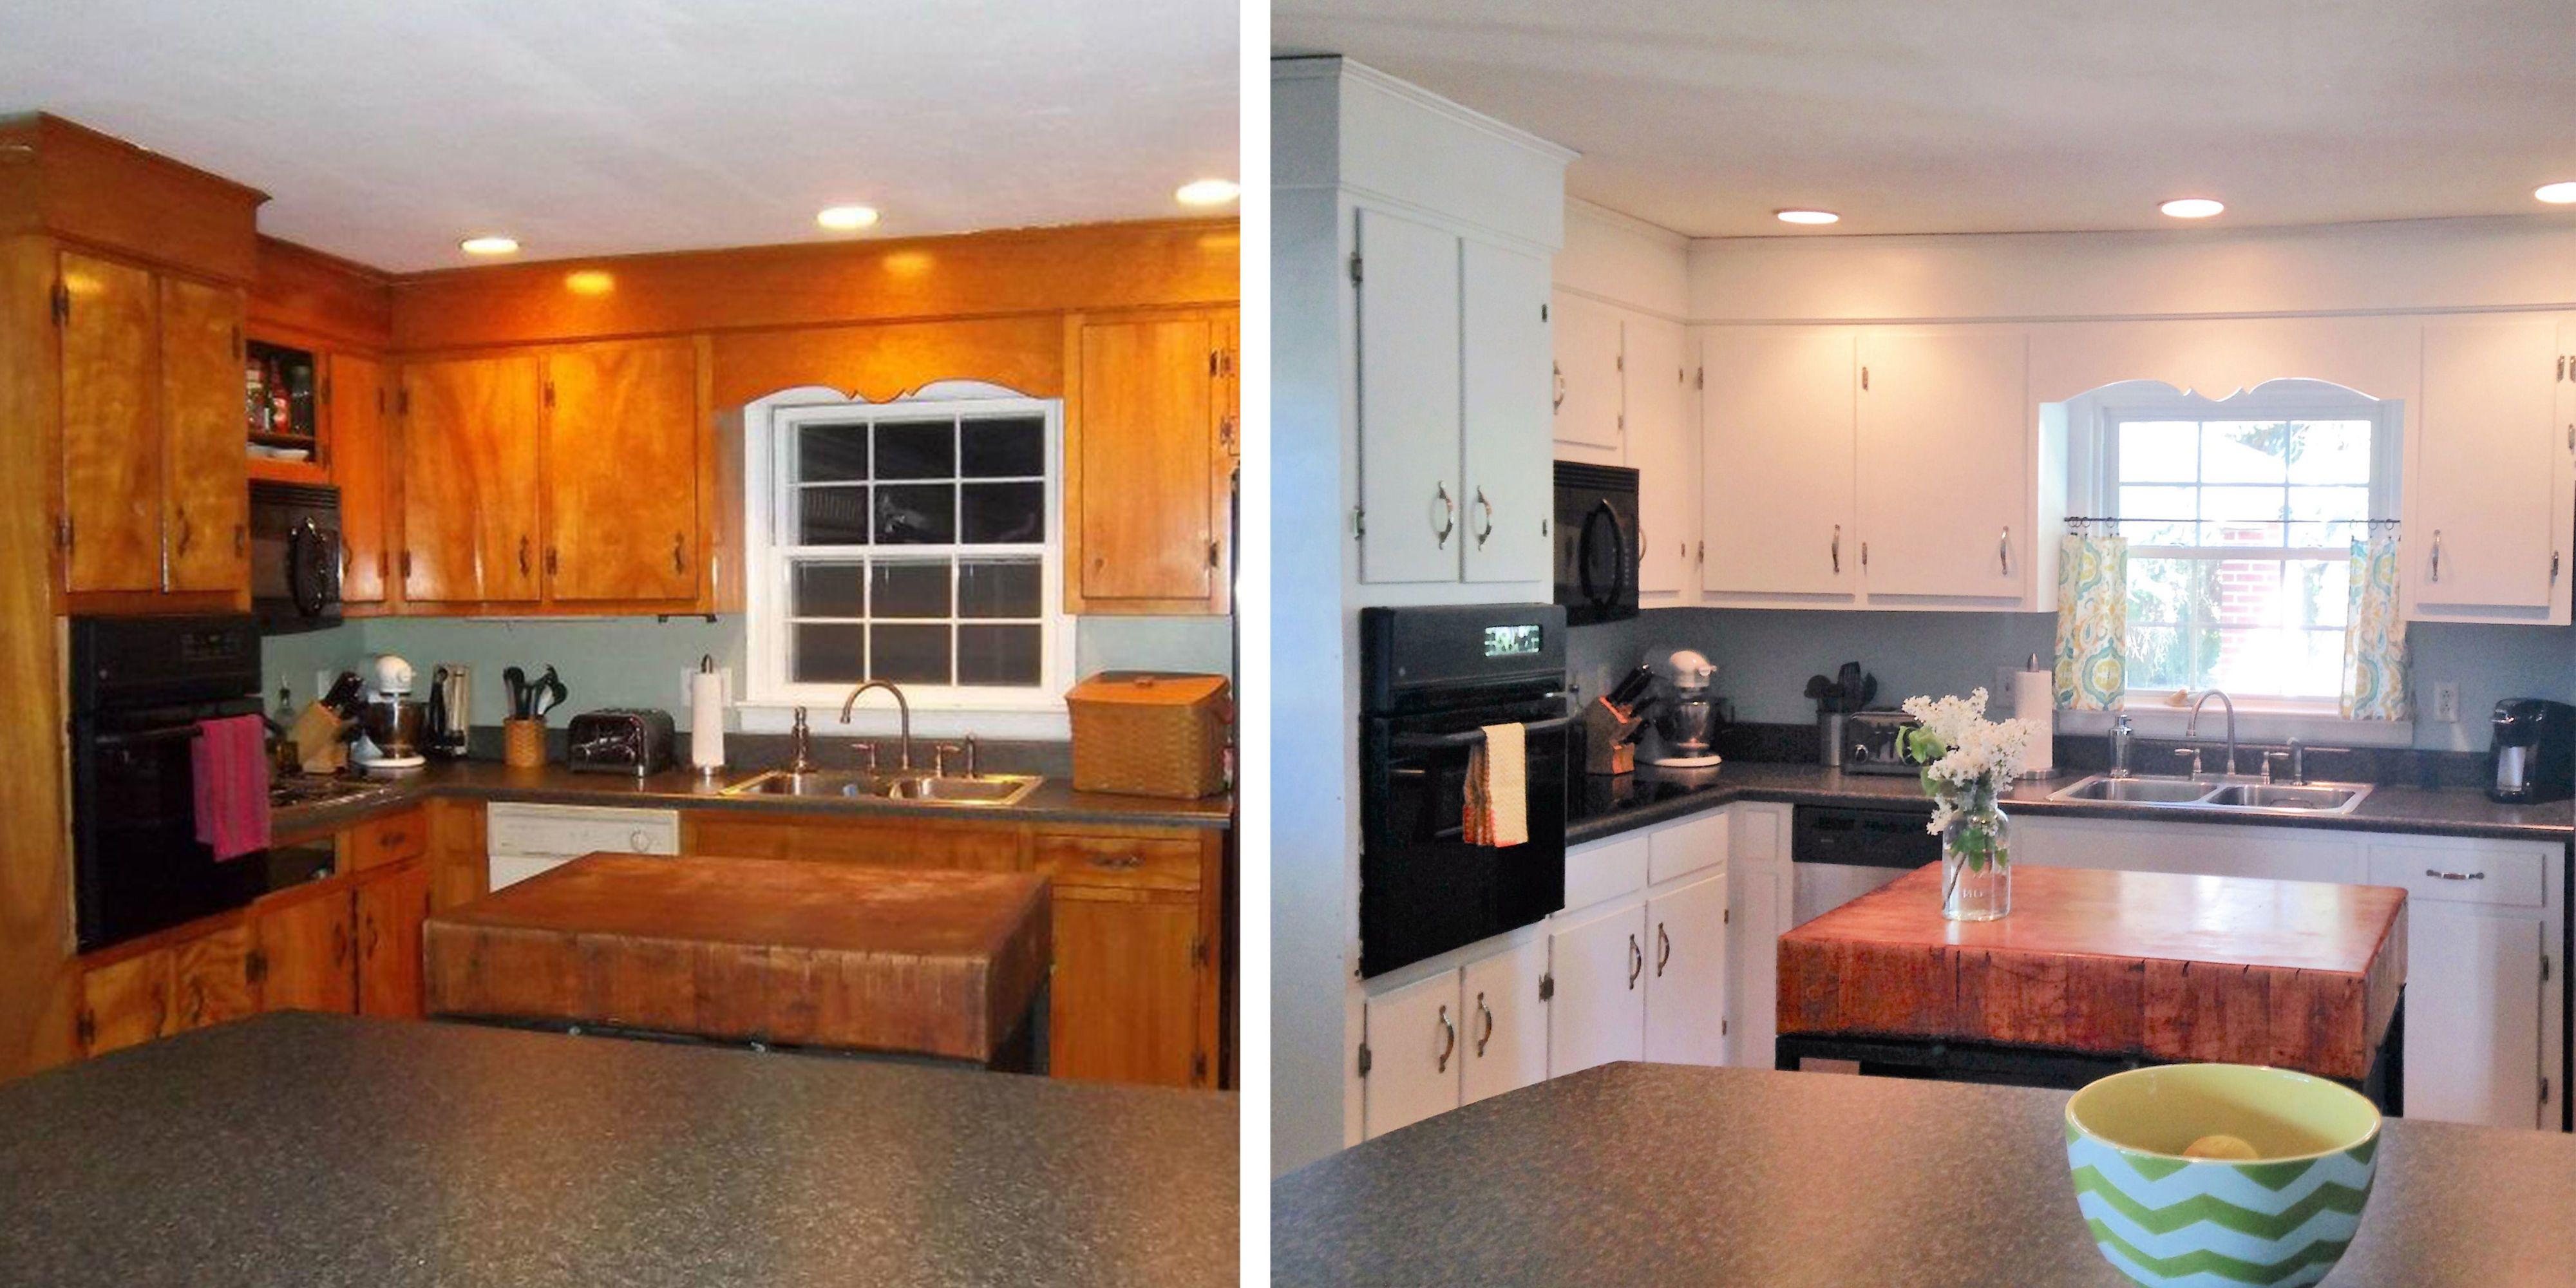 10 DIY Kitchen Cabinet Makeovers   Before U0026 After Photos That Prove A  Little TLC Goes A Long Way